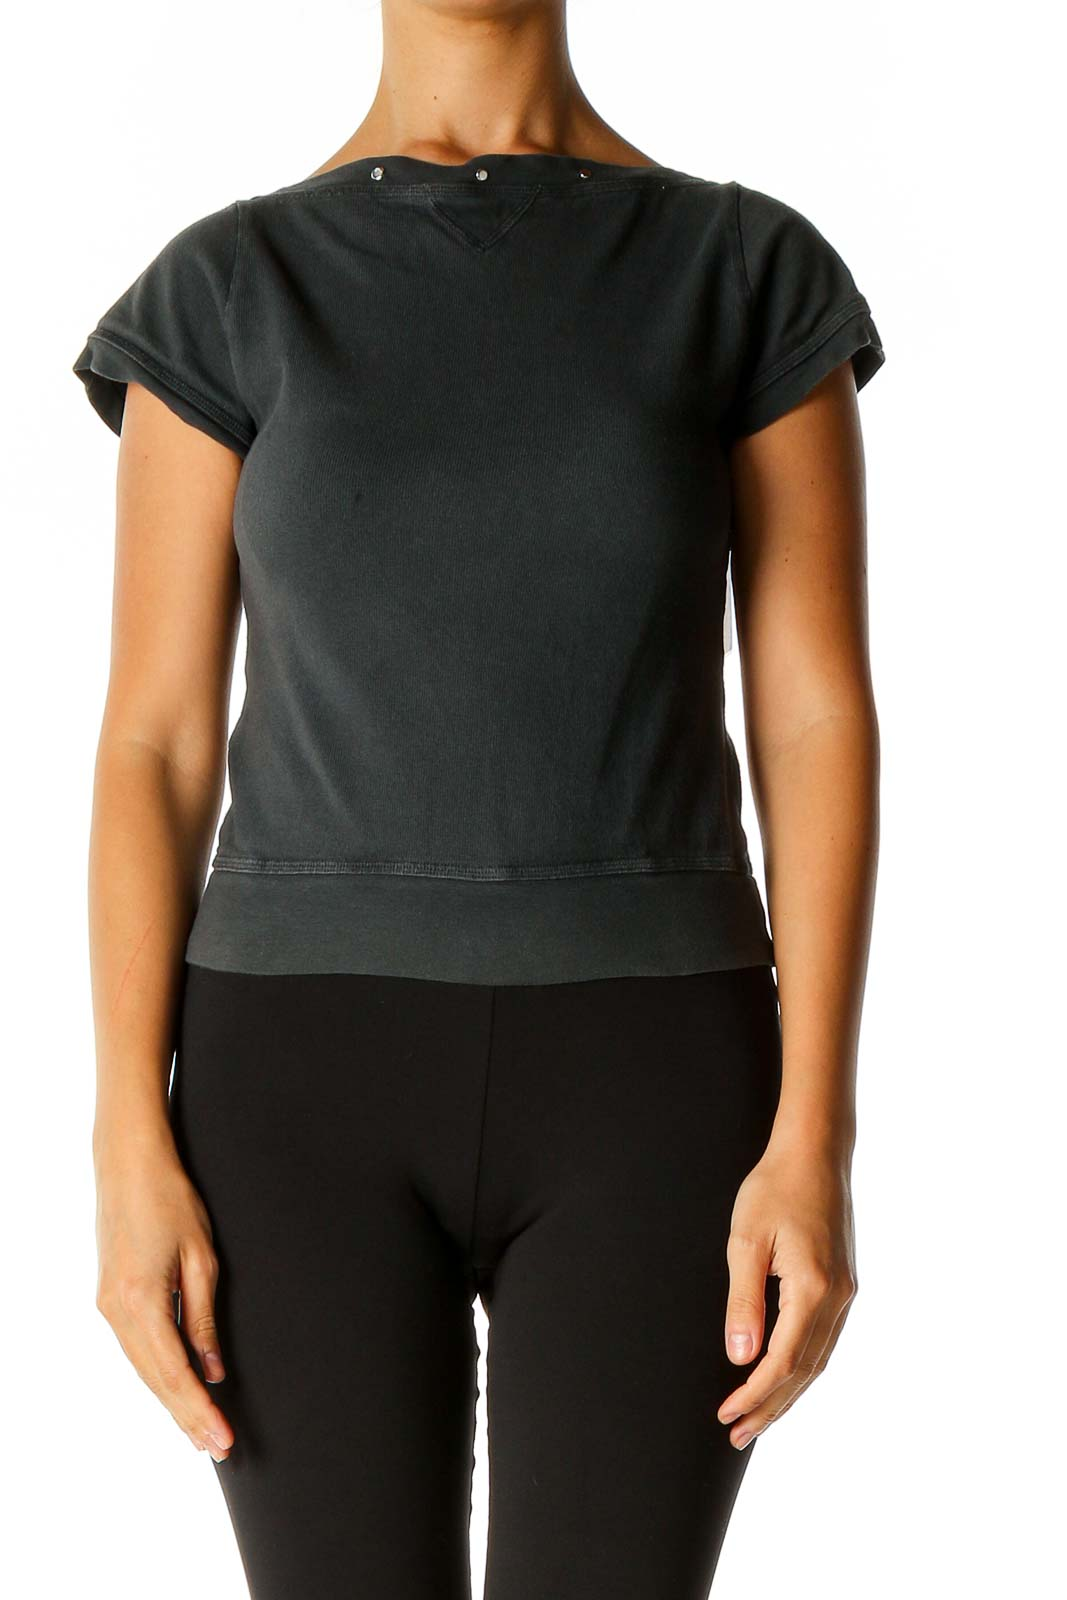 Gray Solid Chic T-Shirt Front